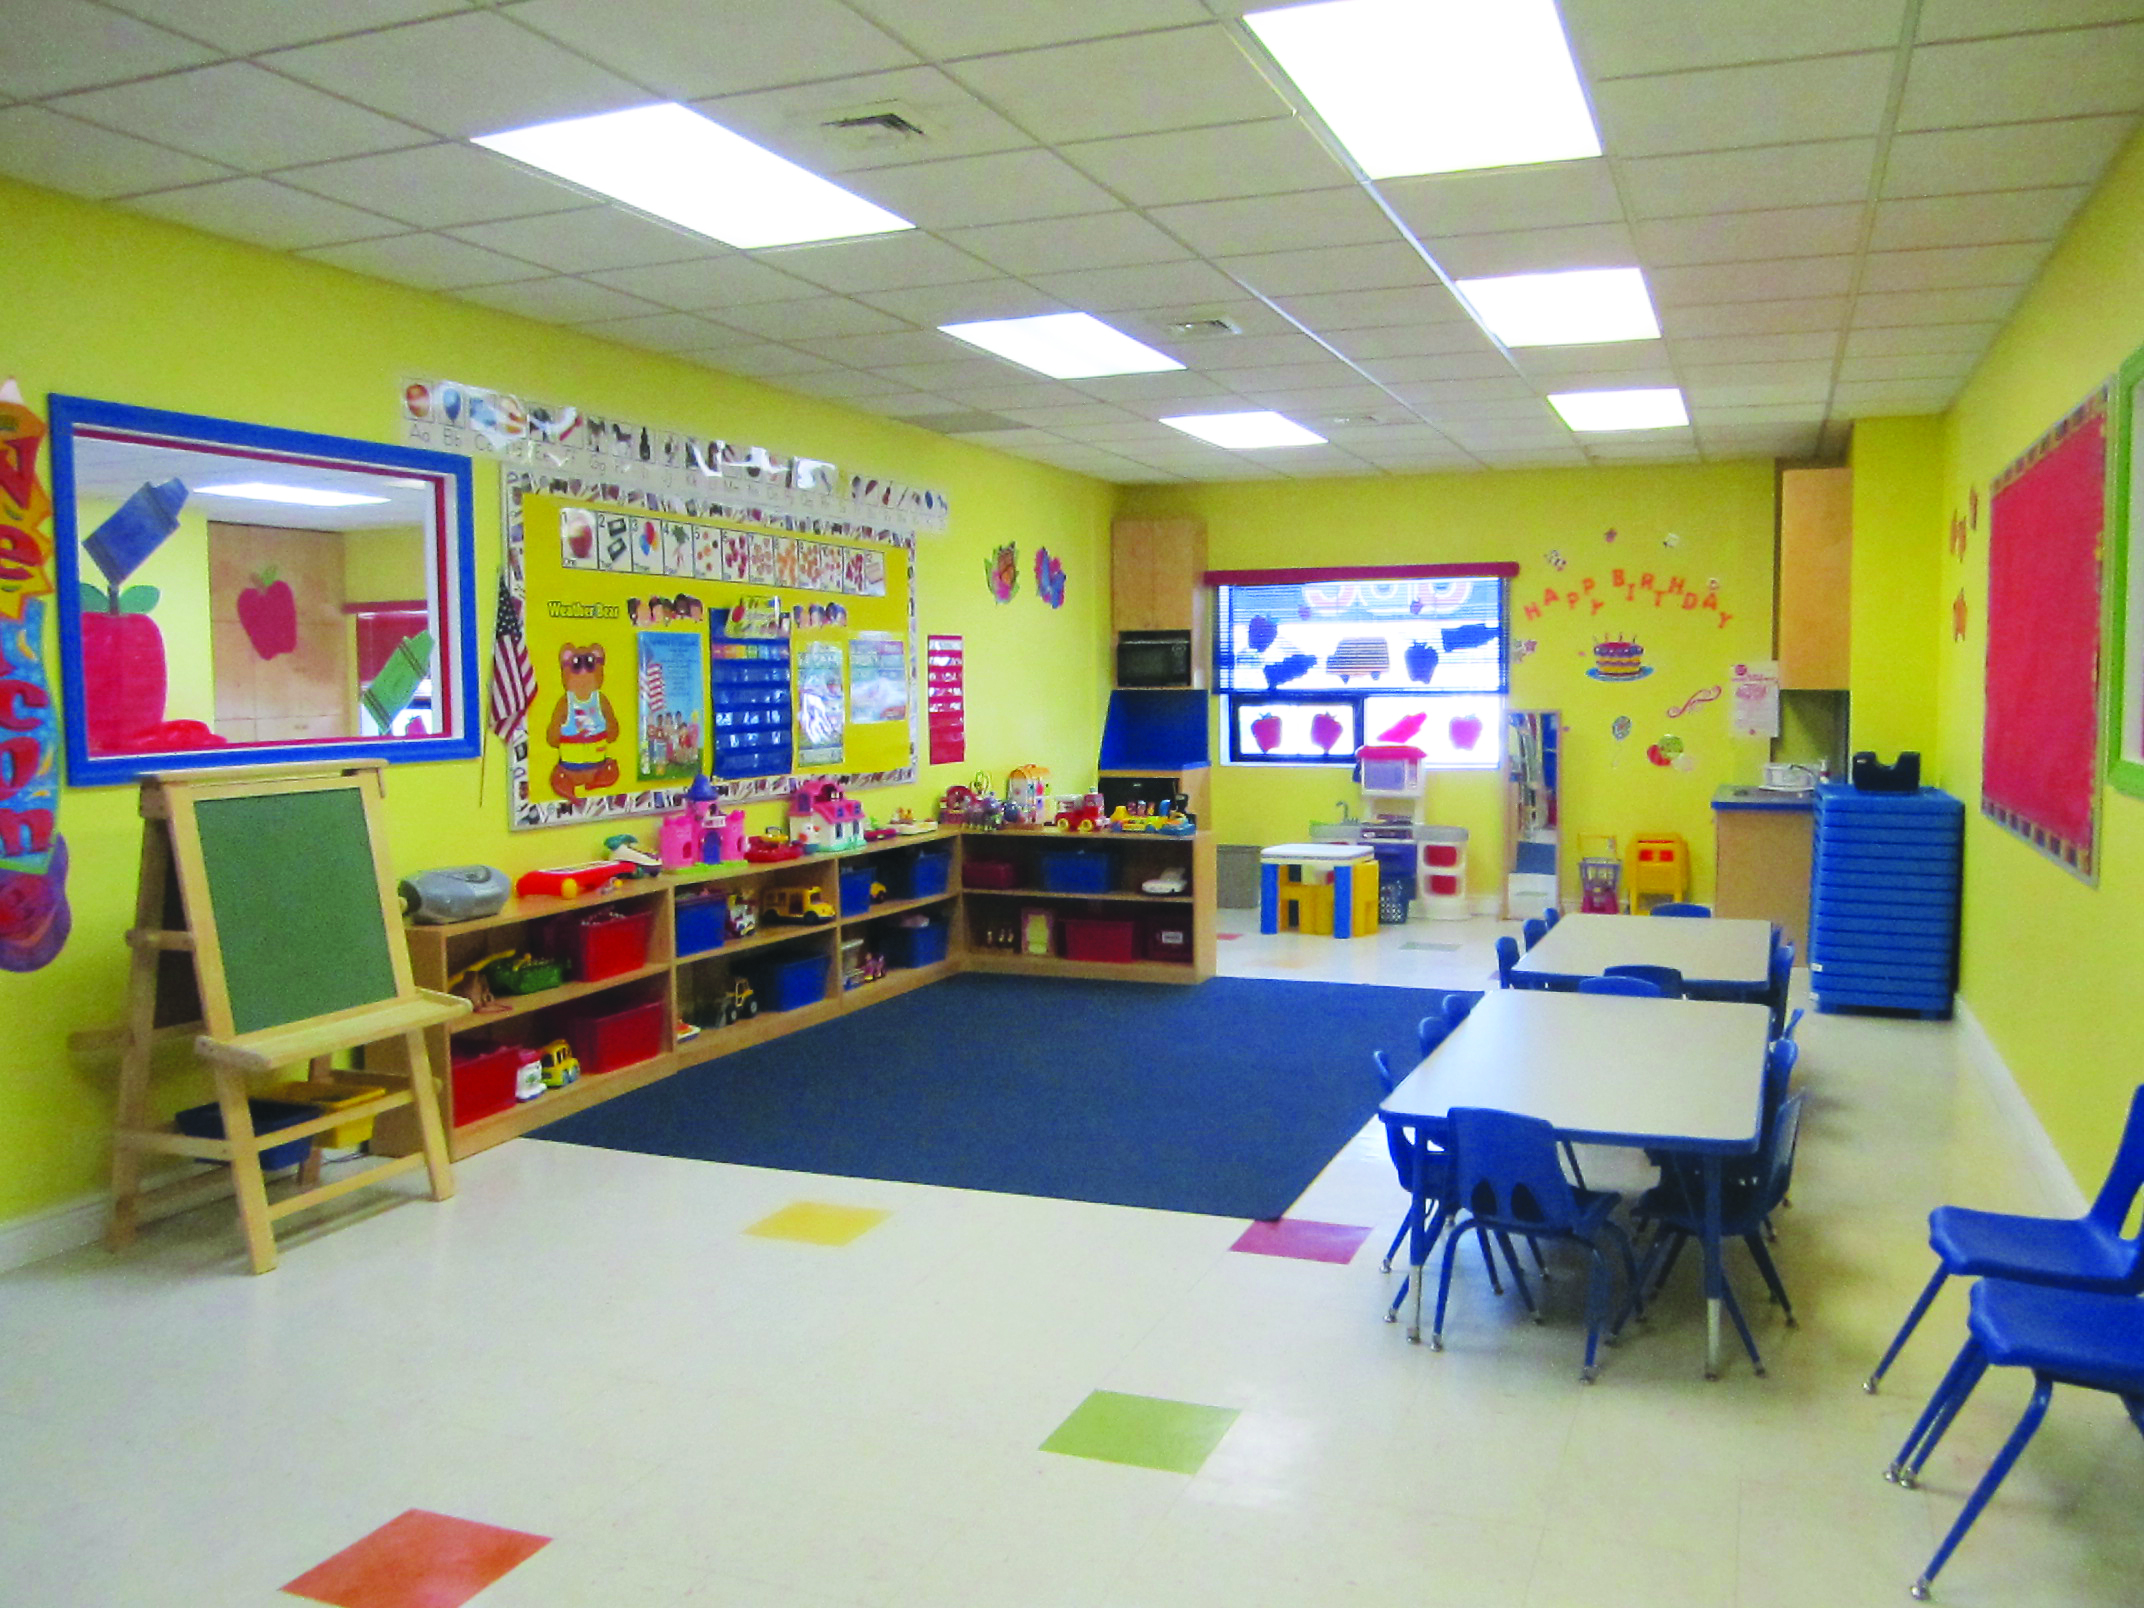 Sunshine Daycare Center S Curriculum Will Emphasize